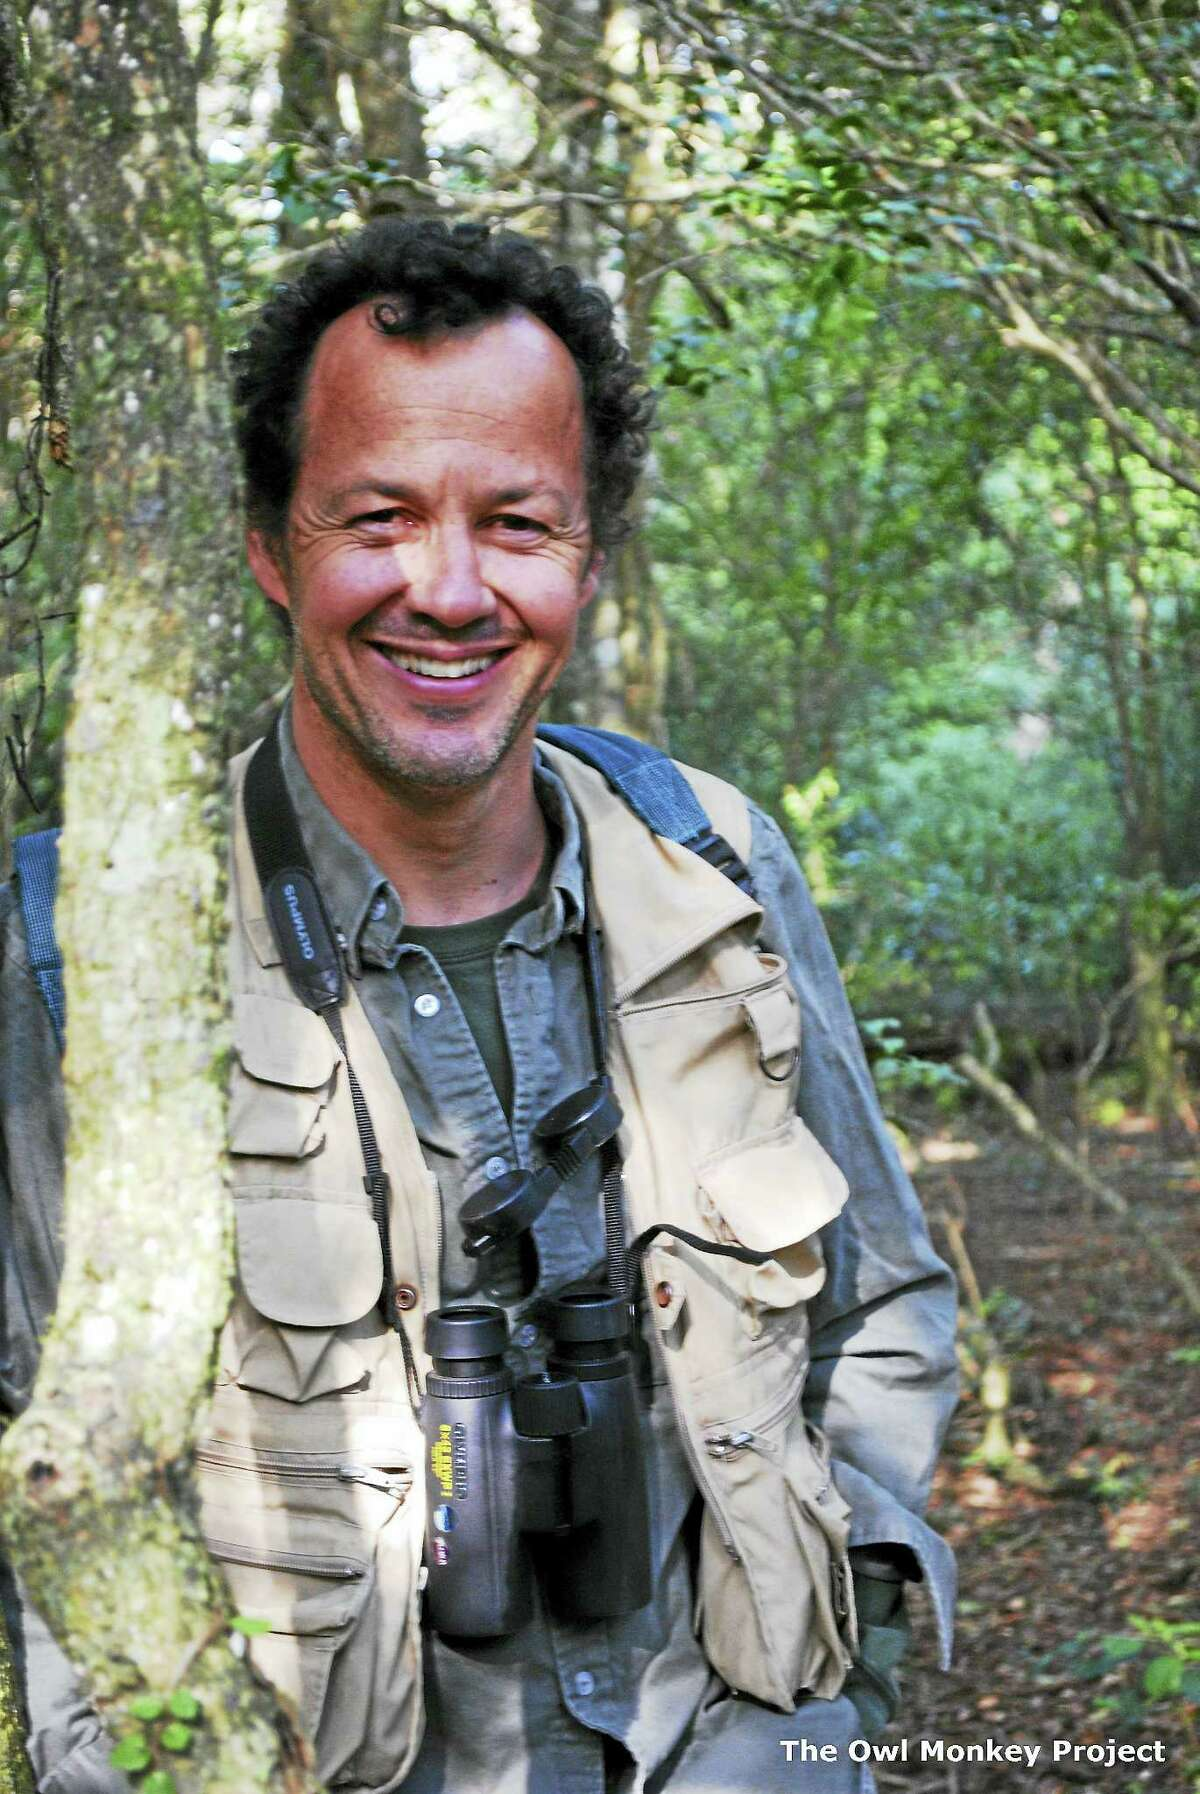 Eduardo Fernandez-Duque, a biological anthropologist at Yale University, has studied nonhuman primates in South America for much of his career. A new study shows that those species are now facing extinction.